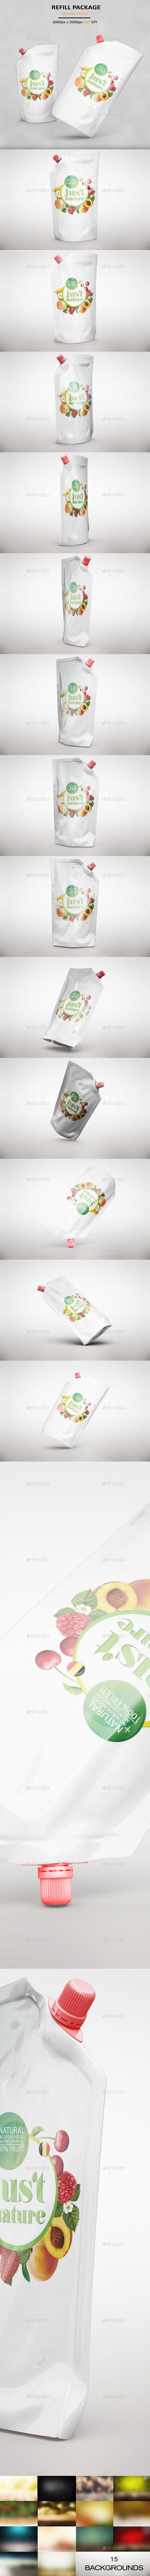 Refill Package MockUp 20292212